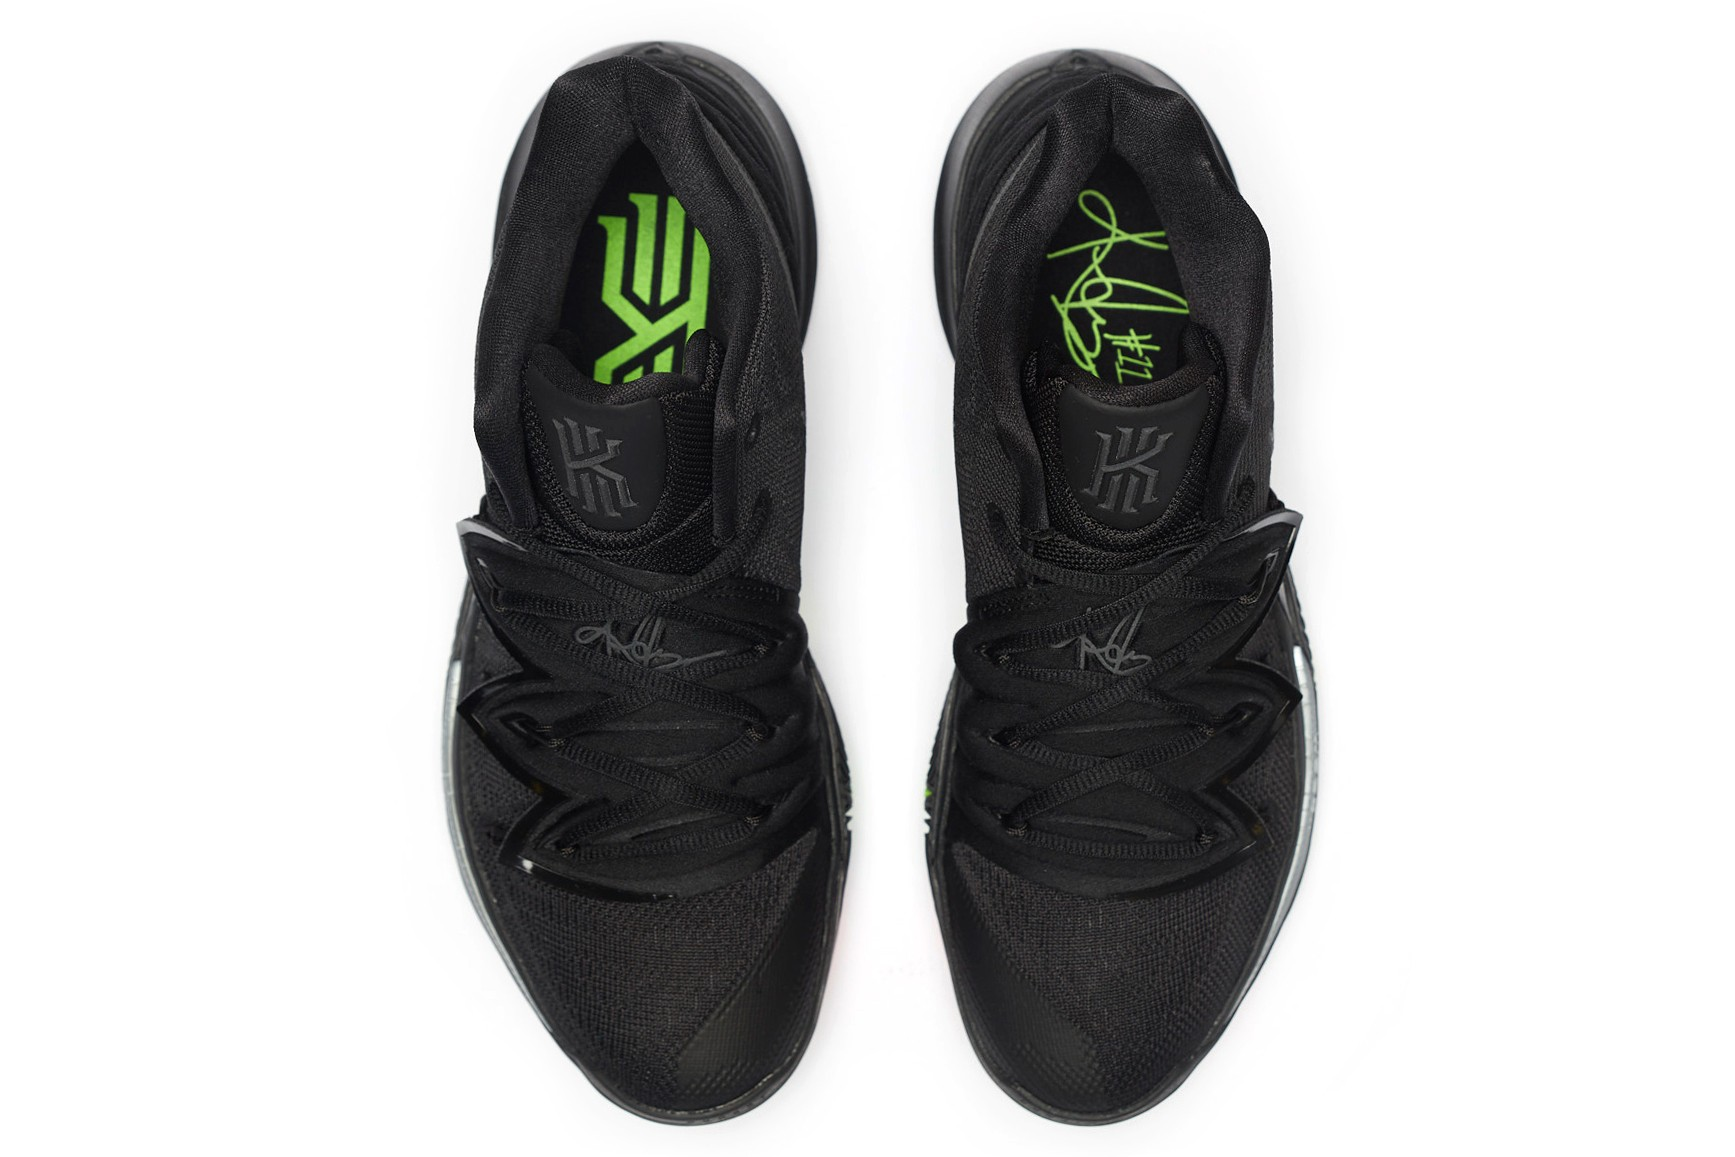 Nike Kyrie 5 Gets a Black Revamp With